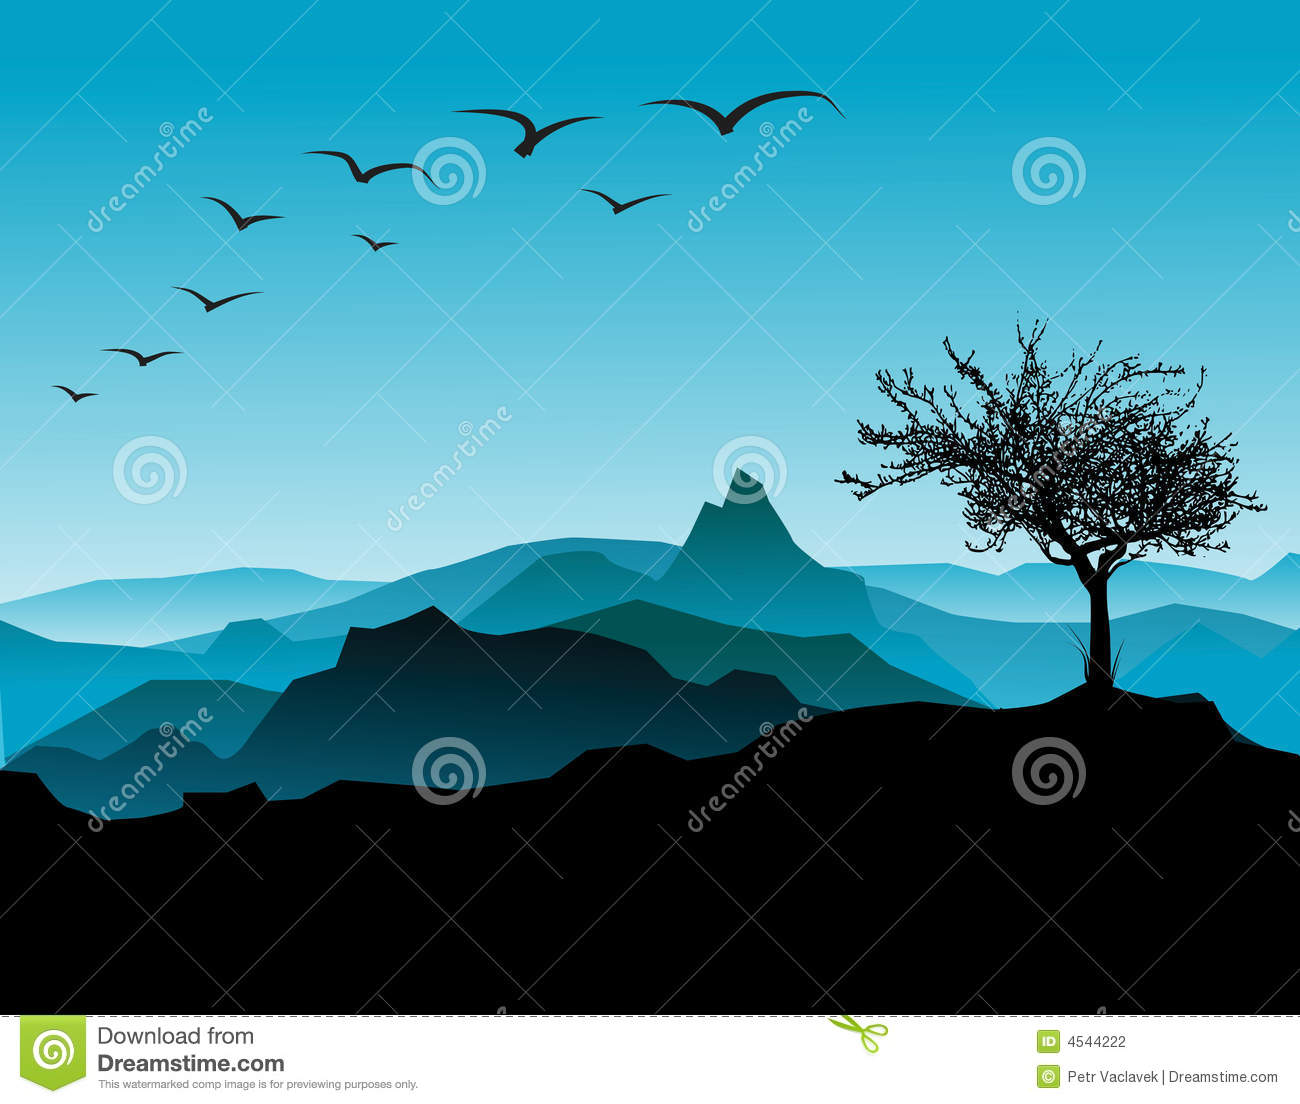 Silhouette of the tree, with mountains in the background.